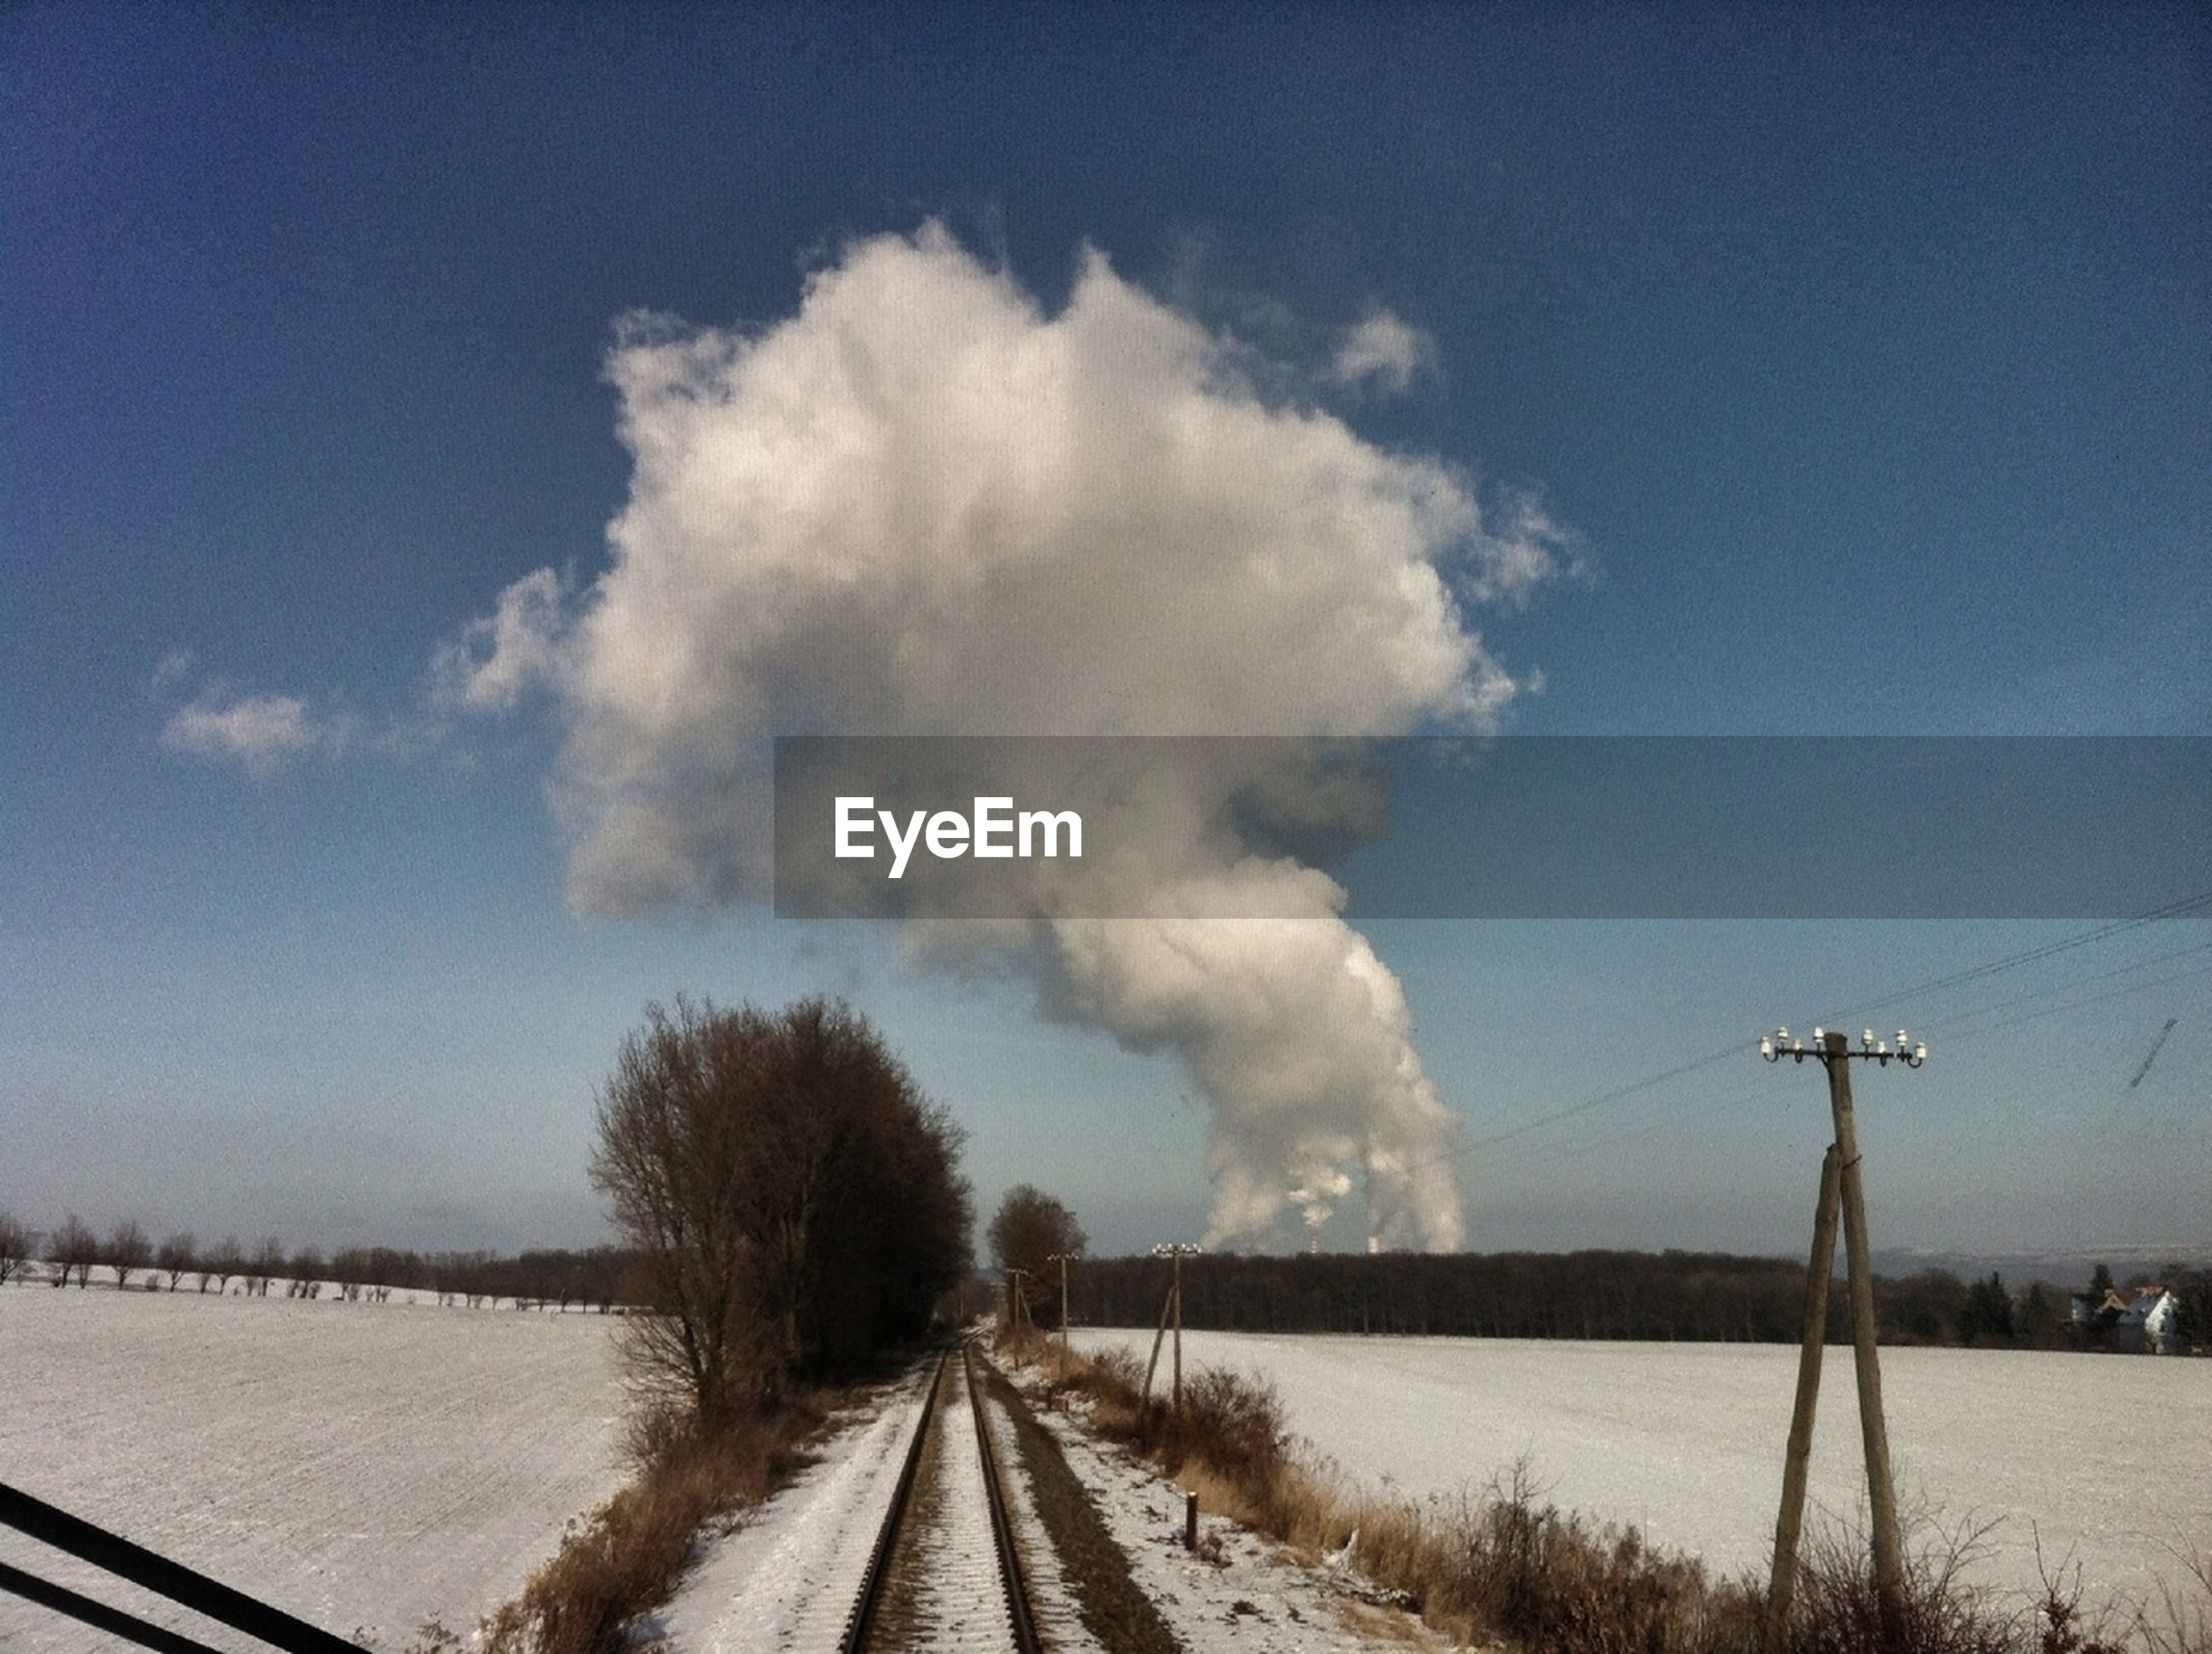 Factories emitting smoke seen through train windshield